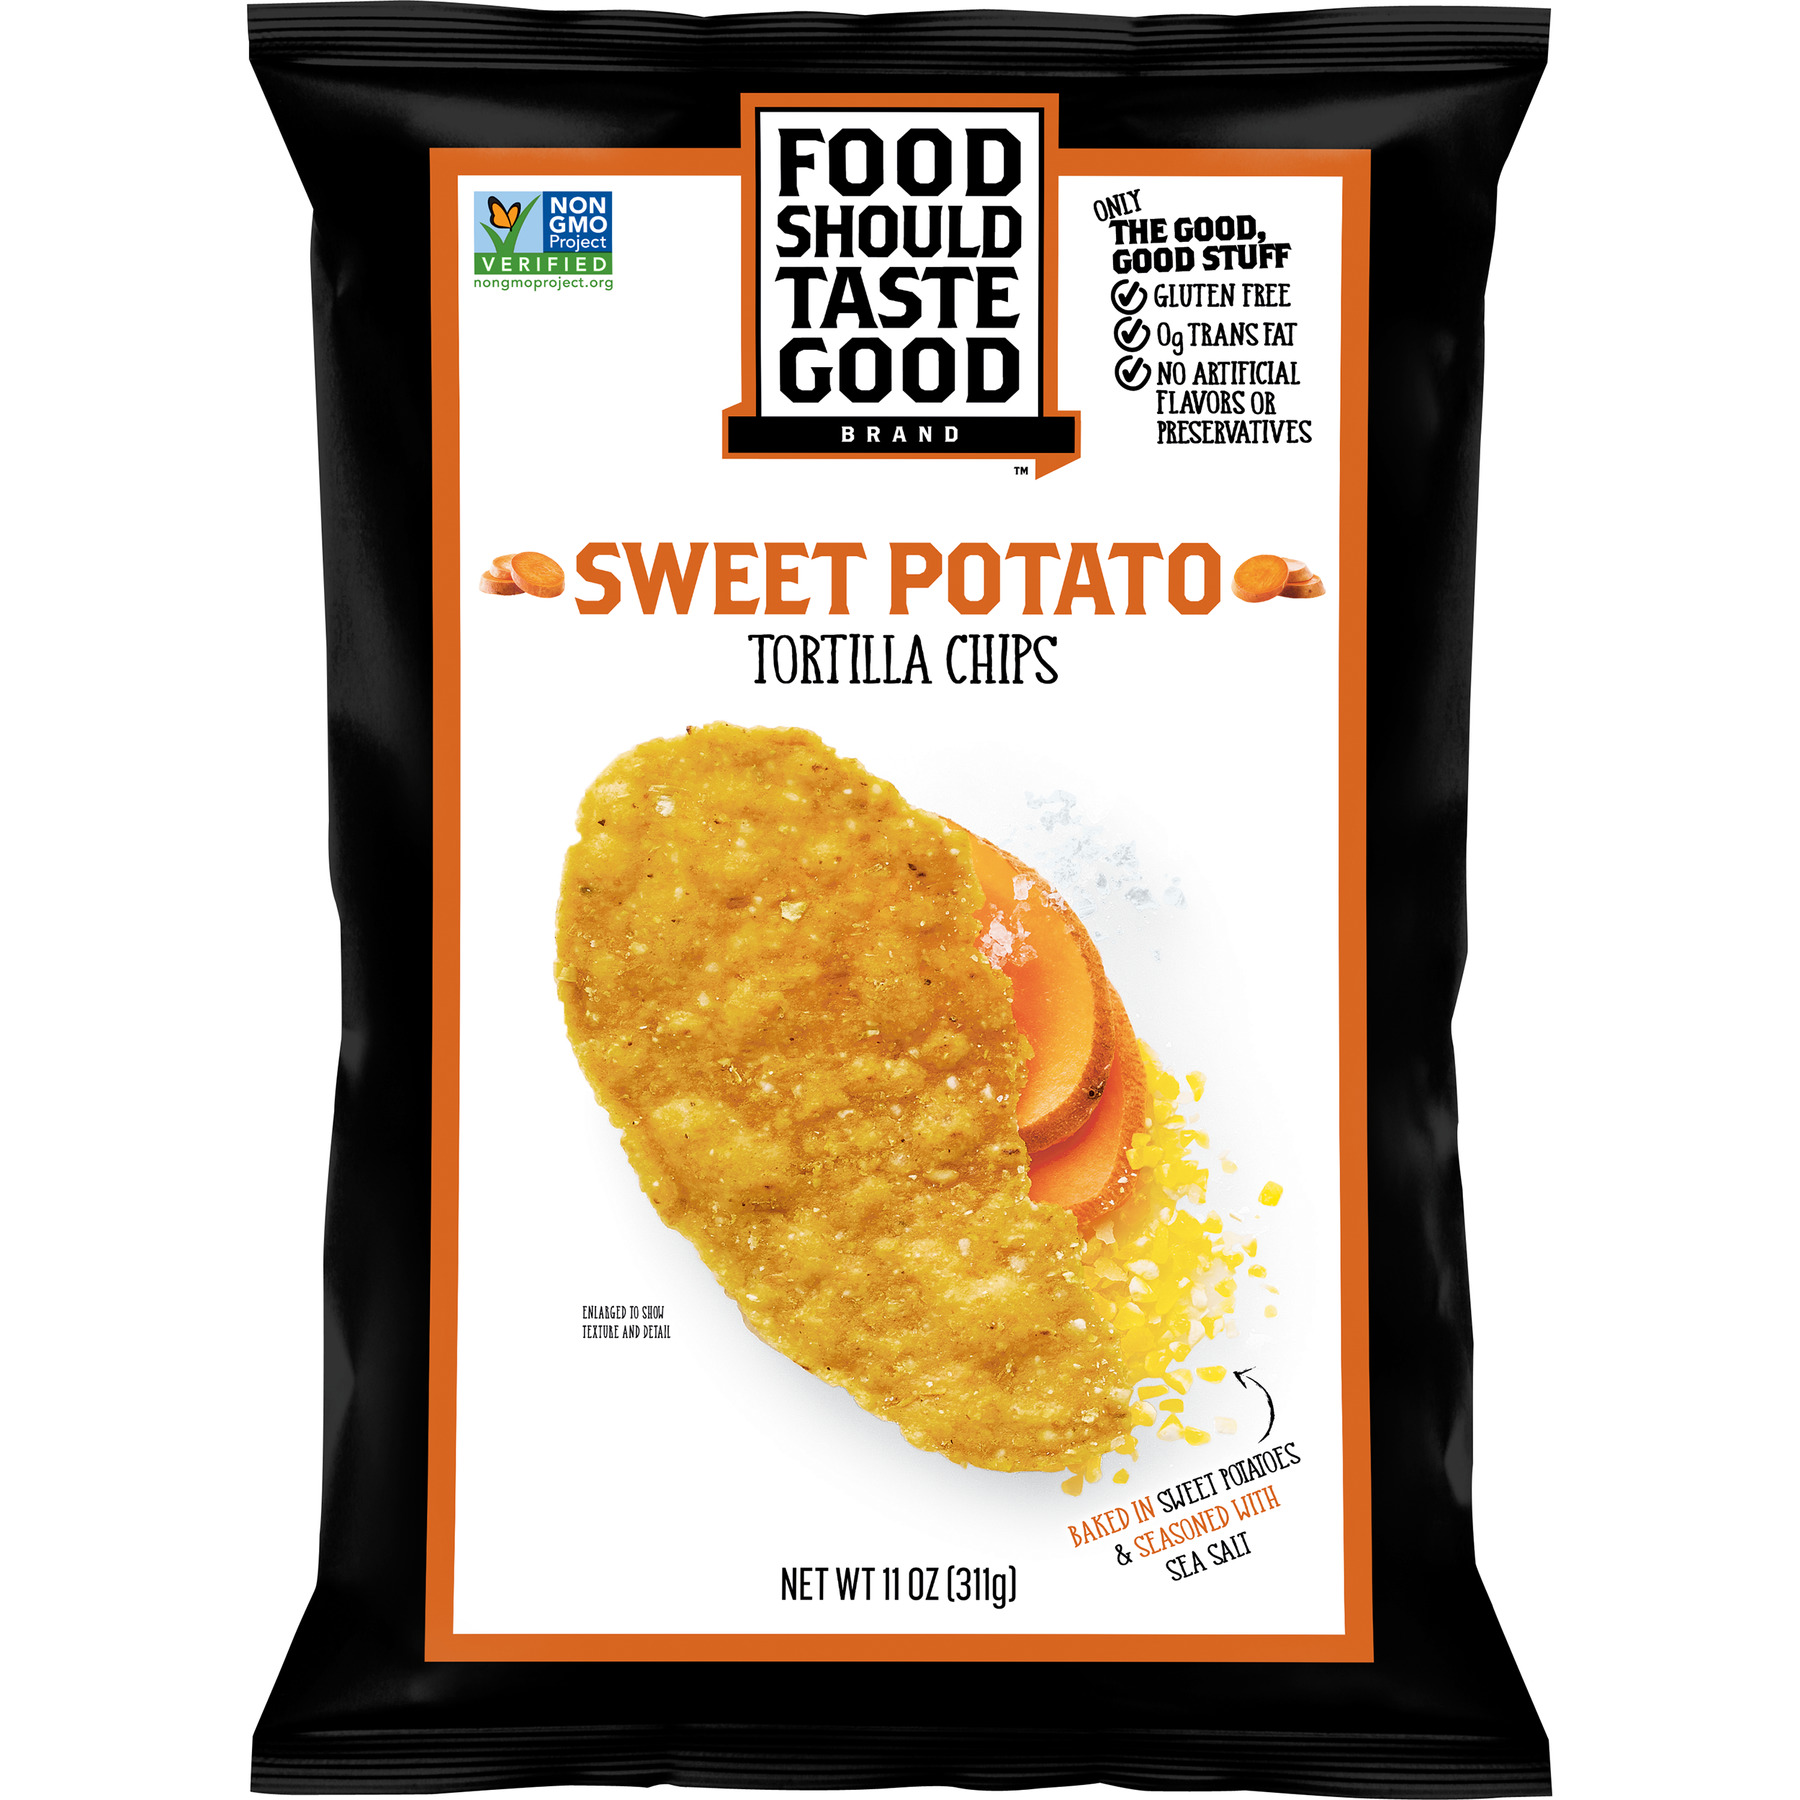 Food Should Taste Good Sweet Potato Tortilla Chips, 11 oz